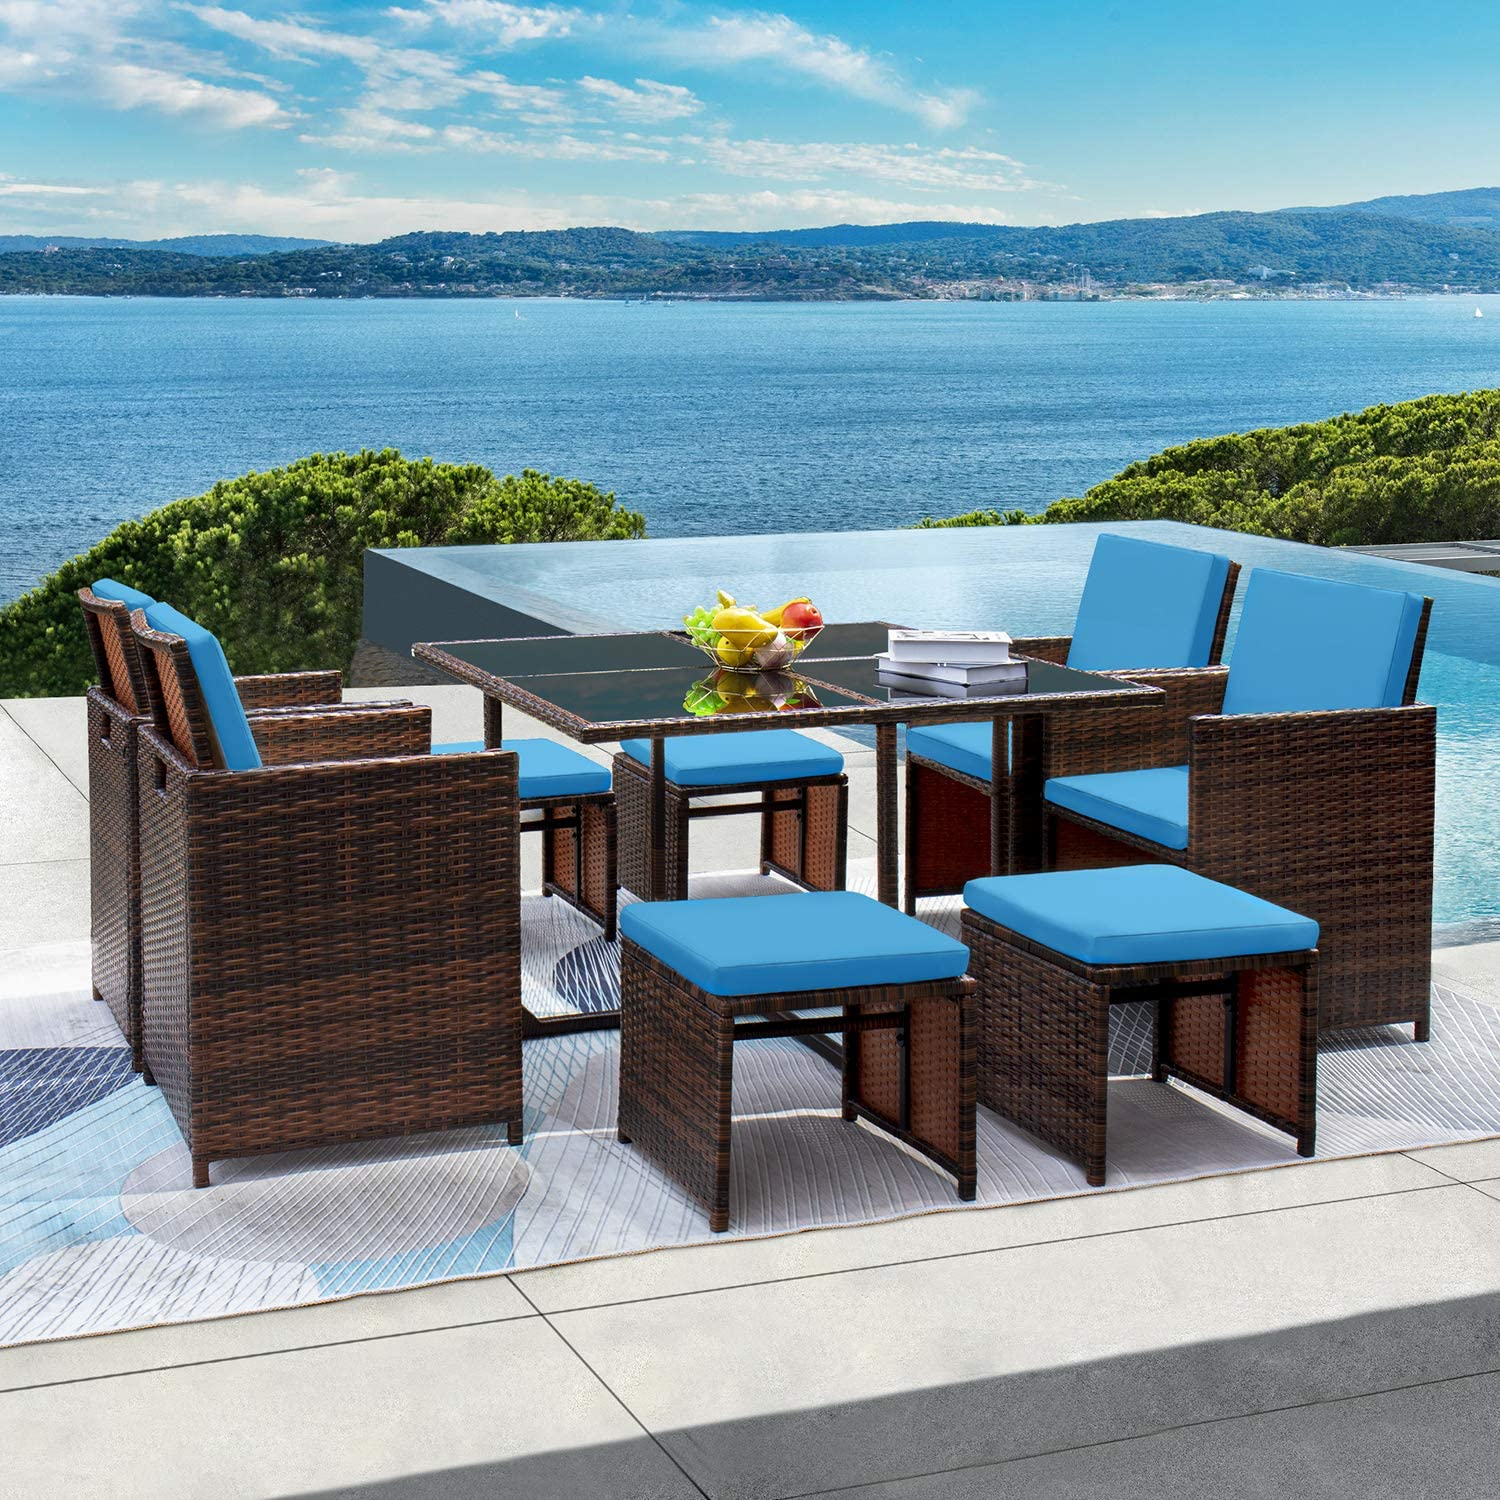 GUNJI 9 Pieces Patio Dining Sets Outdoor Table and Chairs Patio Dining Table Set with Space Saving Rattan Chairs Patio Furniture Sets Cushioned Seating and Back (Blue)